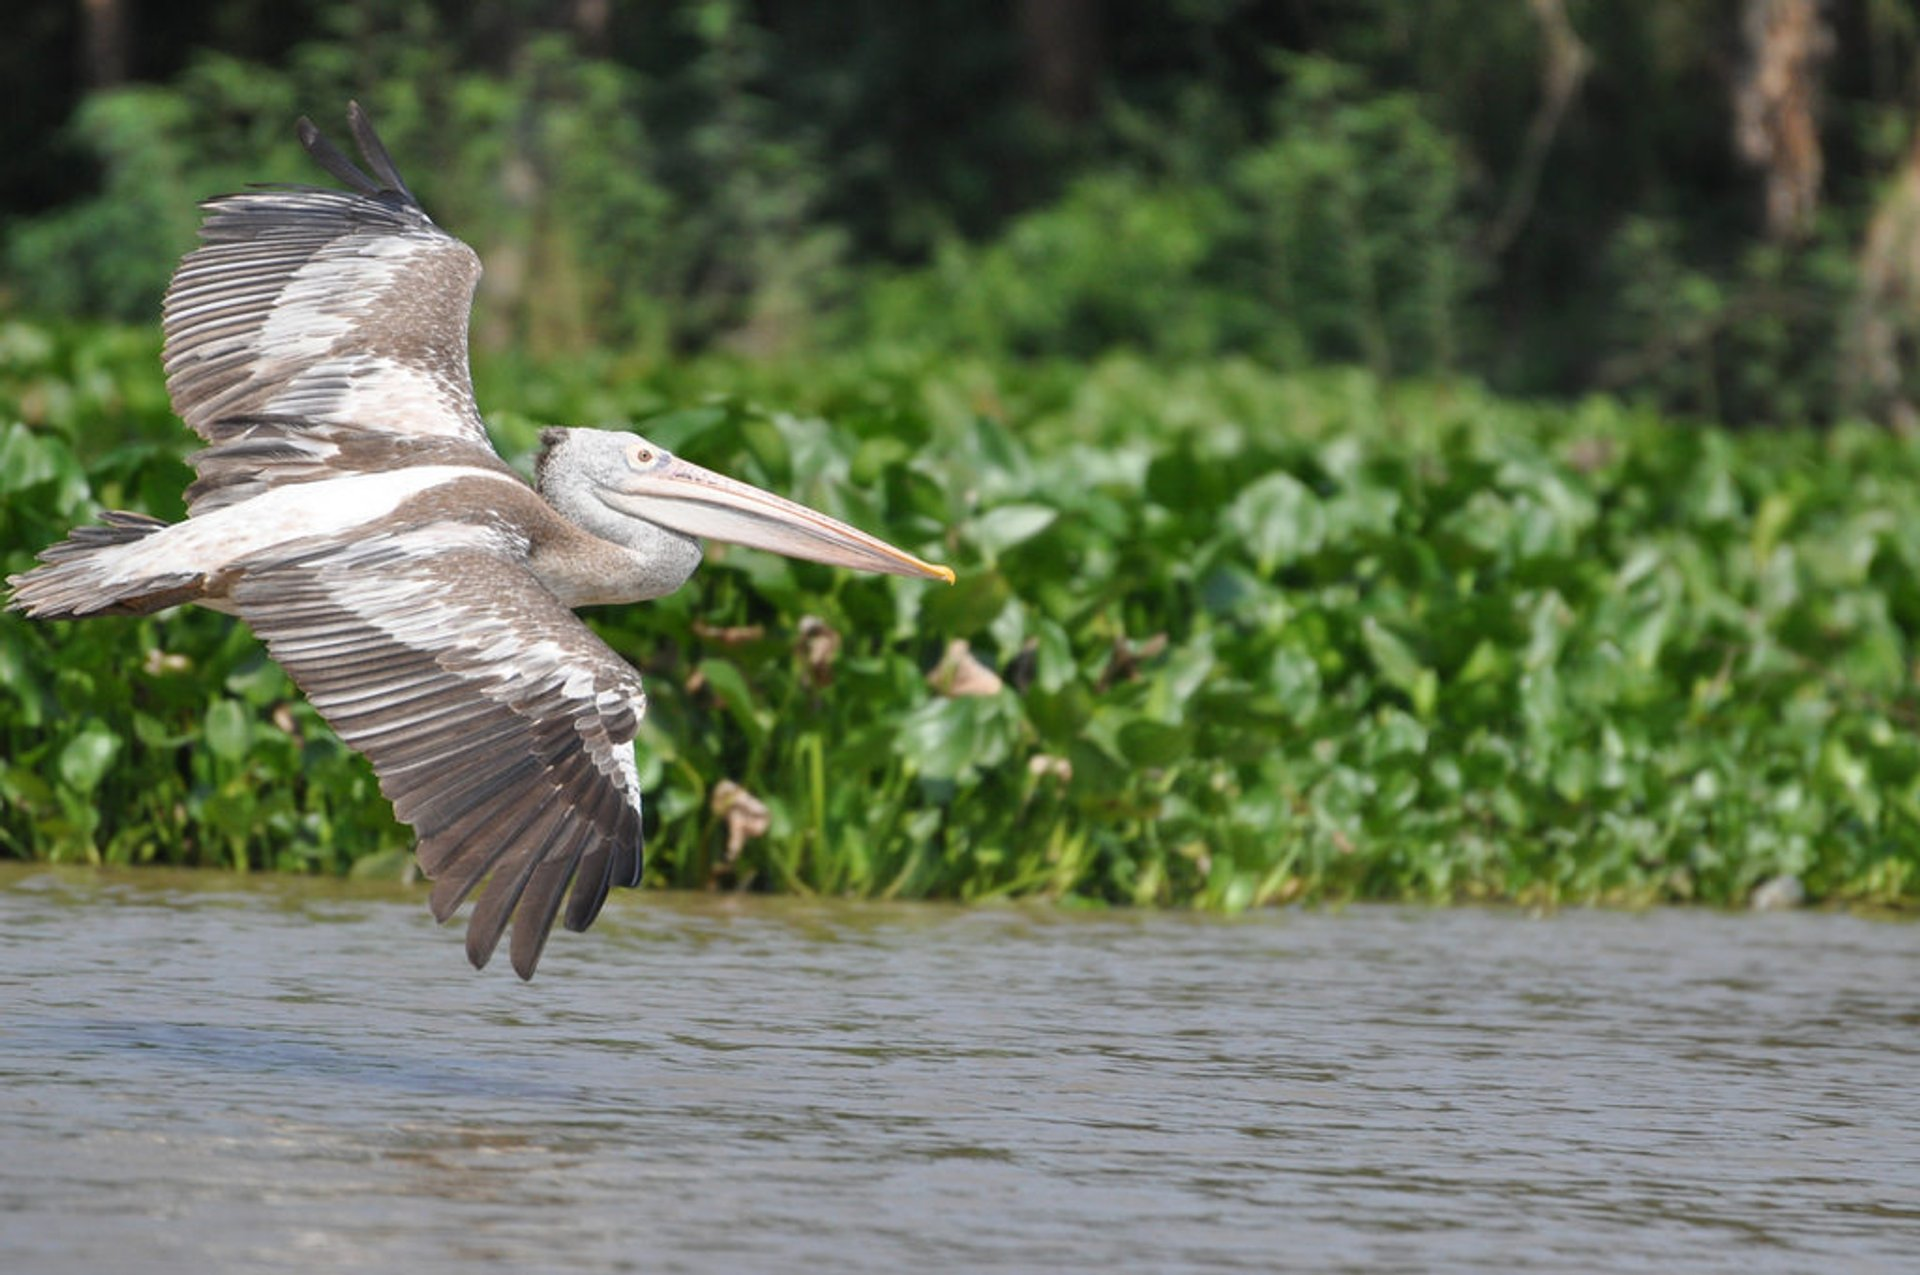 A Spot Billed Pelican 2020